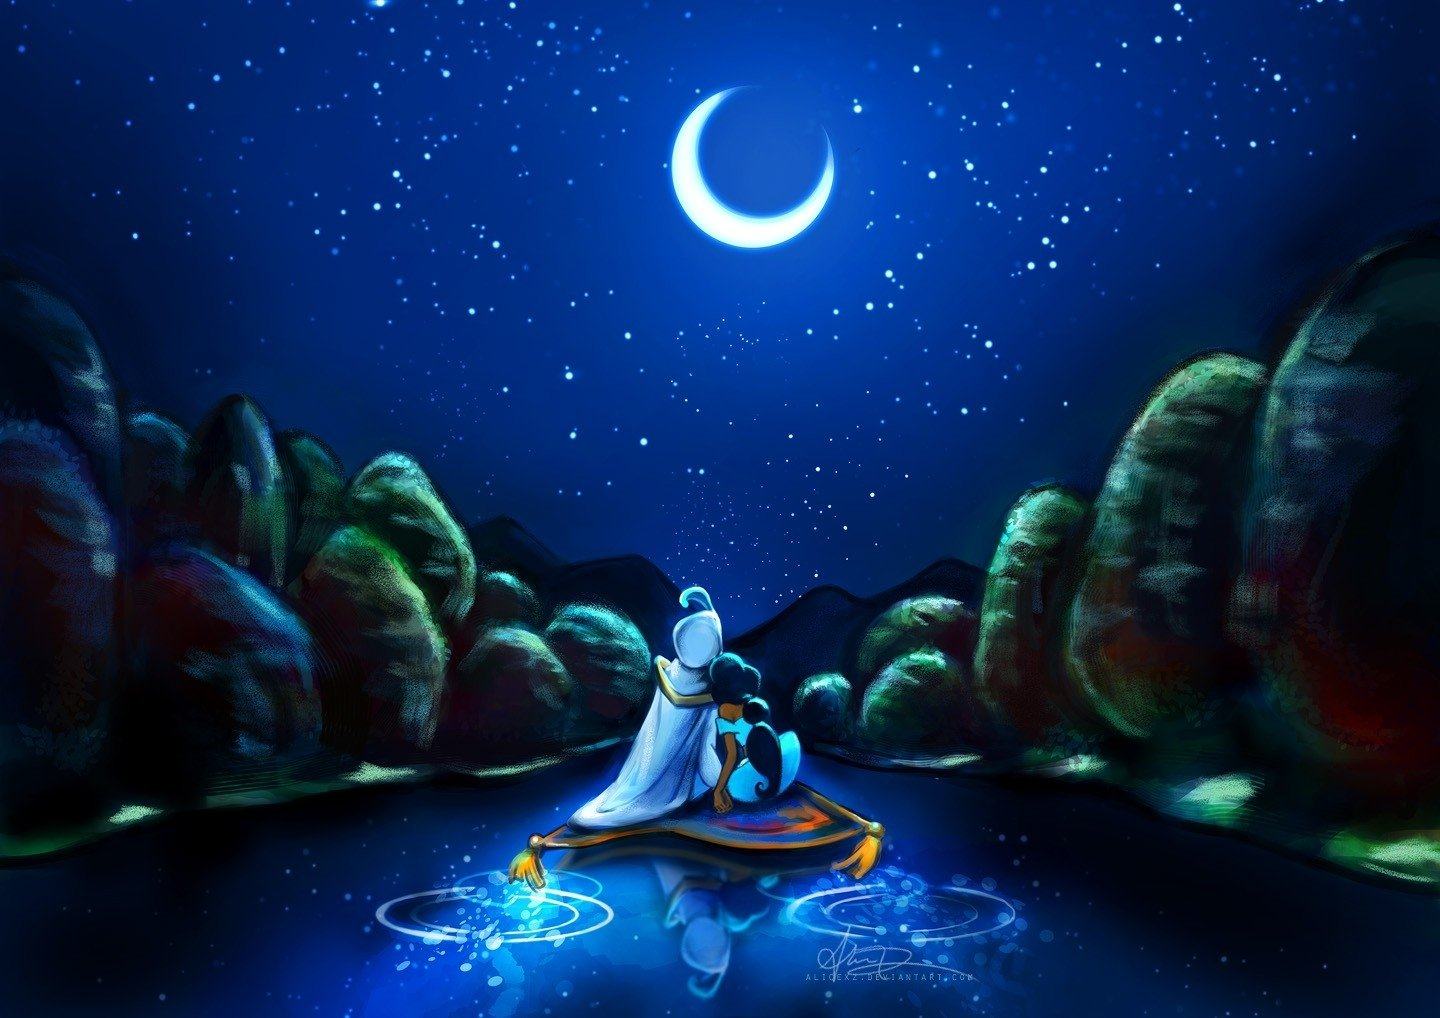 Alfombra Pinocchio Disney Company Stars Flying Moon Carpet Artwork Aladdin